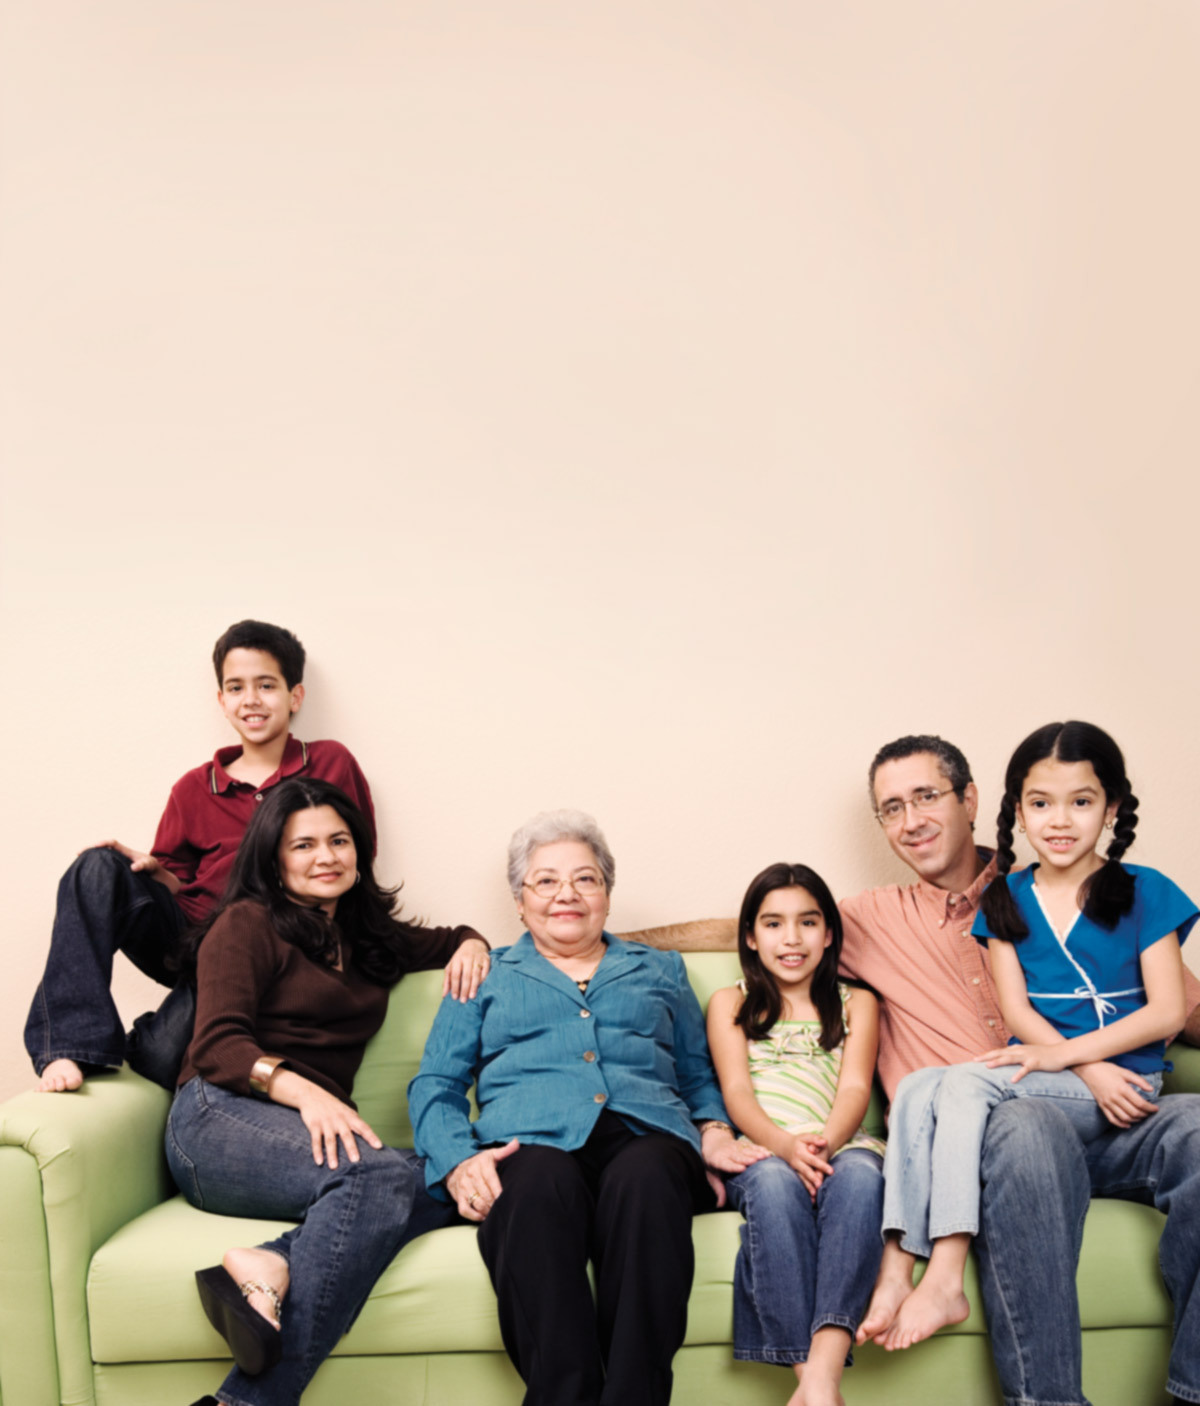 Senior woman sits on couch smiling with family surrounding her